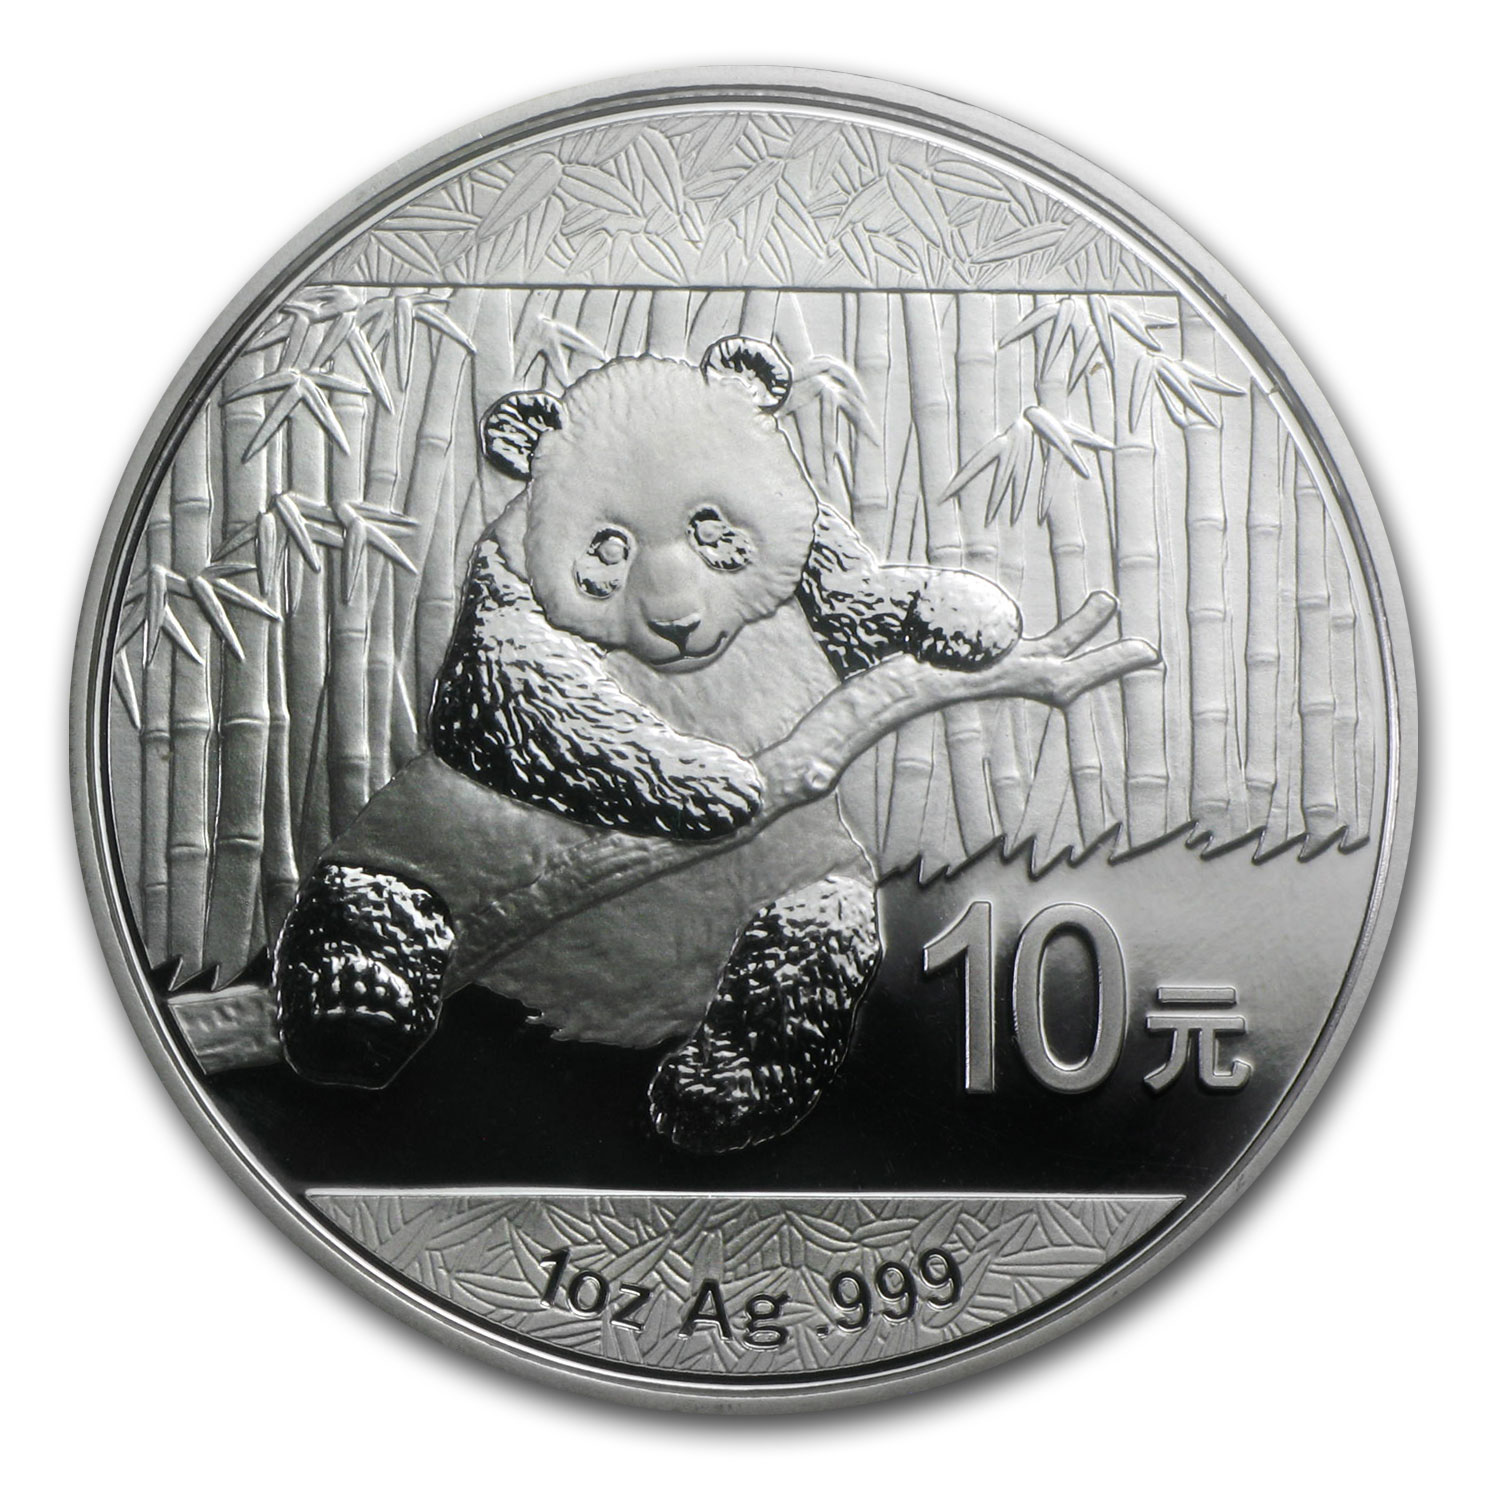 2014 1 oz Silver Chinese Panda - MS-69 PCGS (Gold Label)